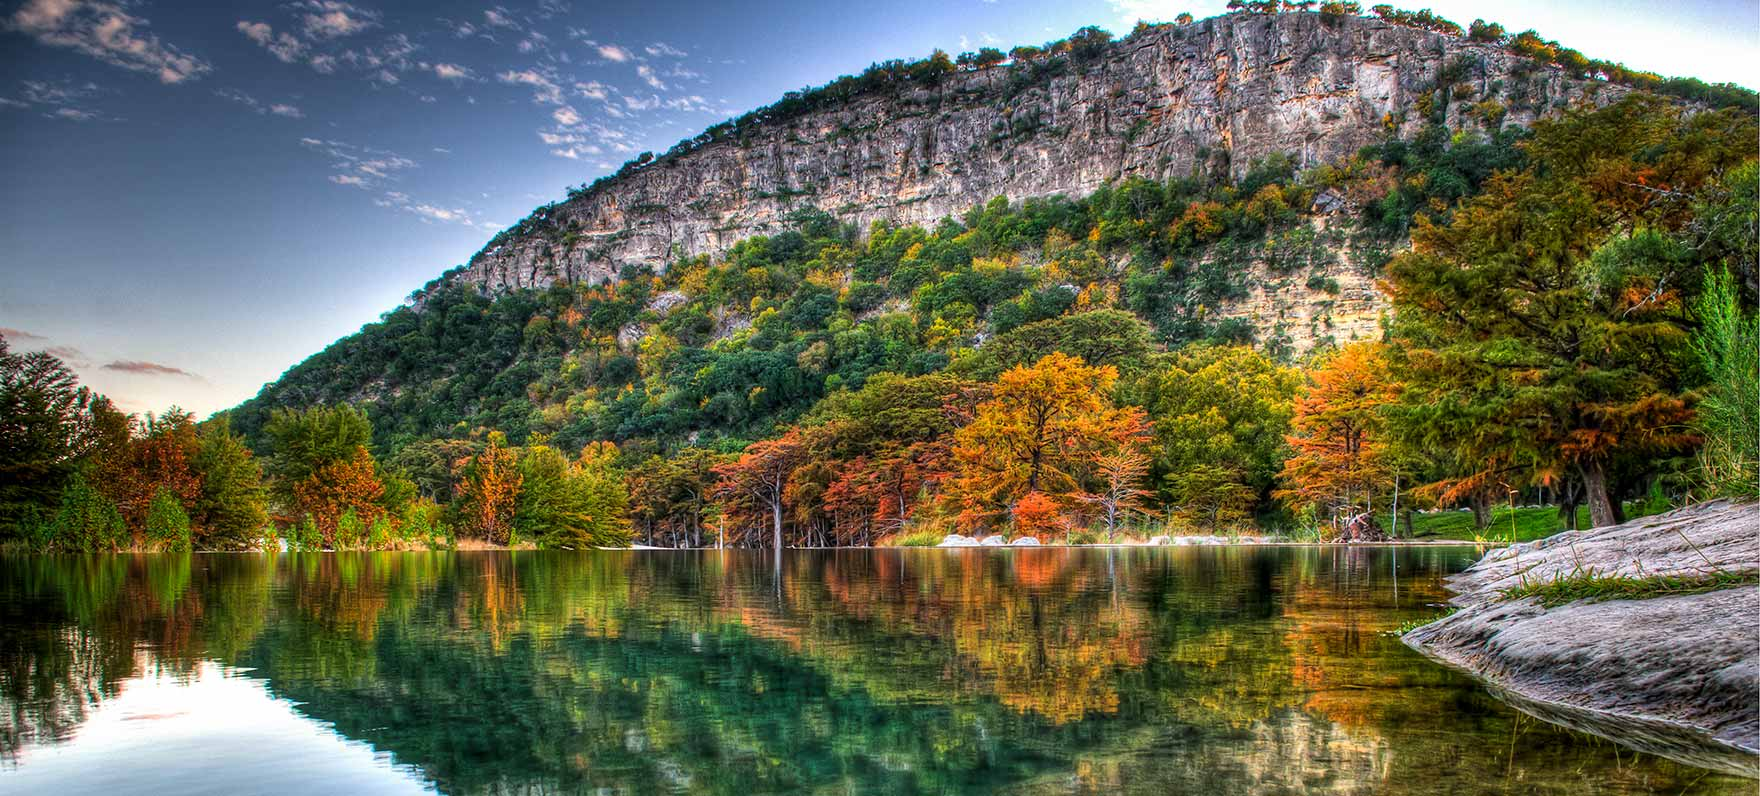 Generations of Texans have spent summer days floating in the clear, cool waters of the Frio River.